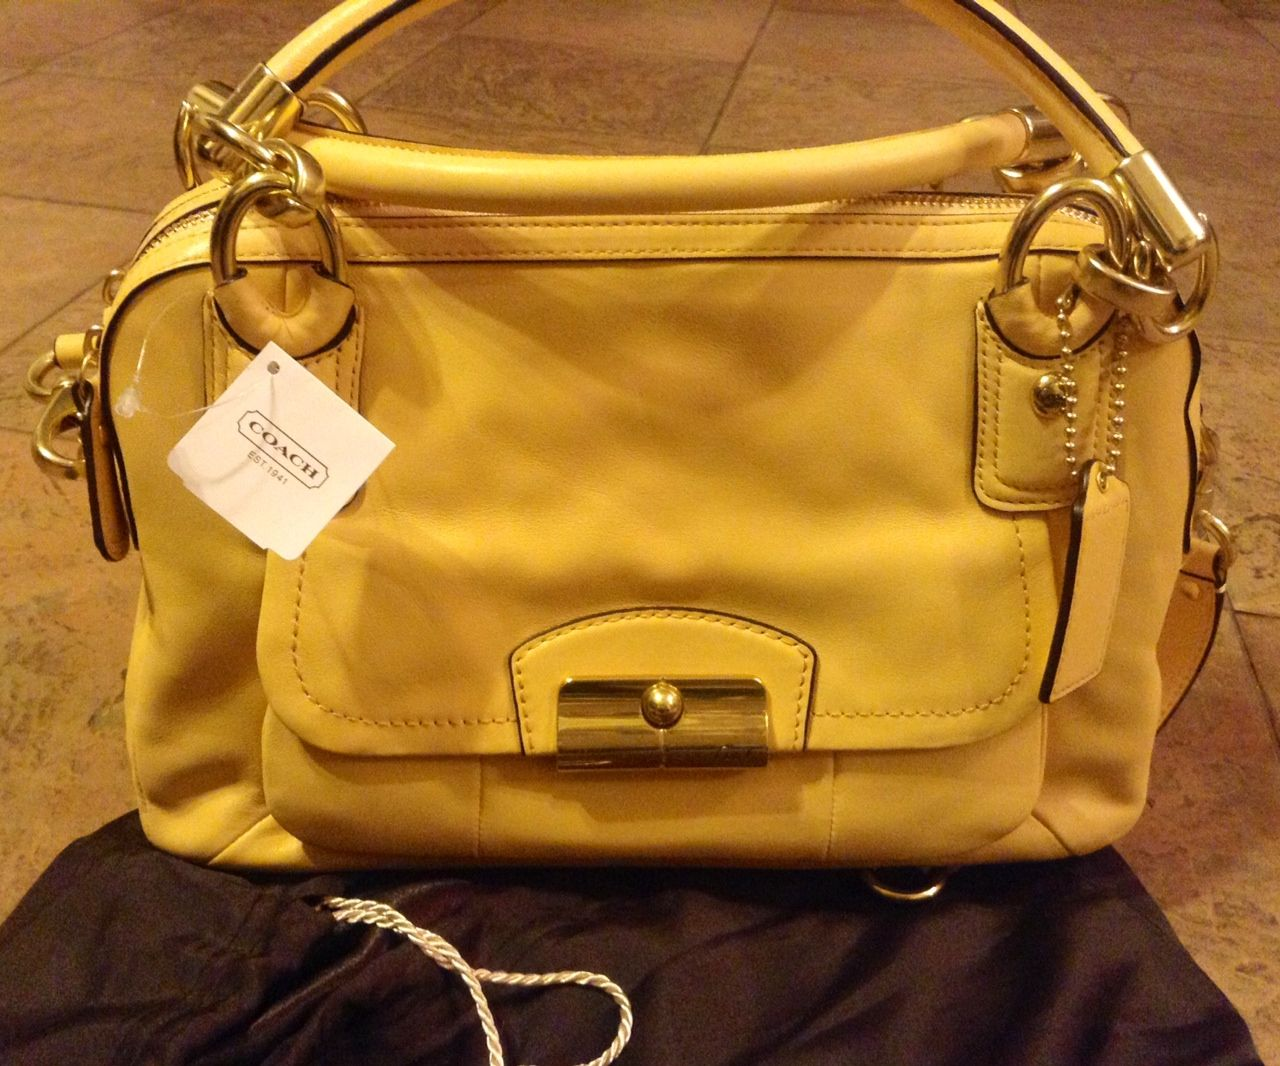 Coach Handbags Outlet And Free Shipping Whatsinyourborough Bester